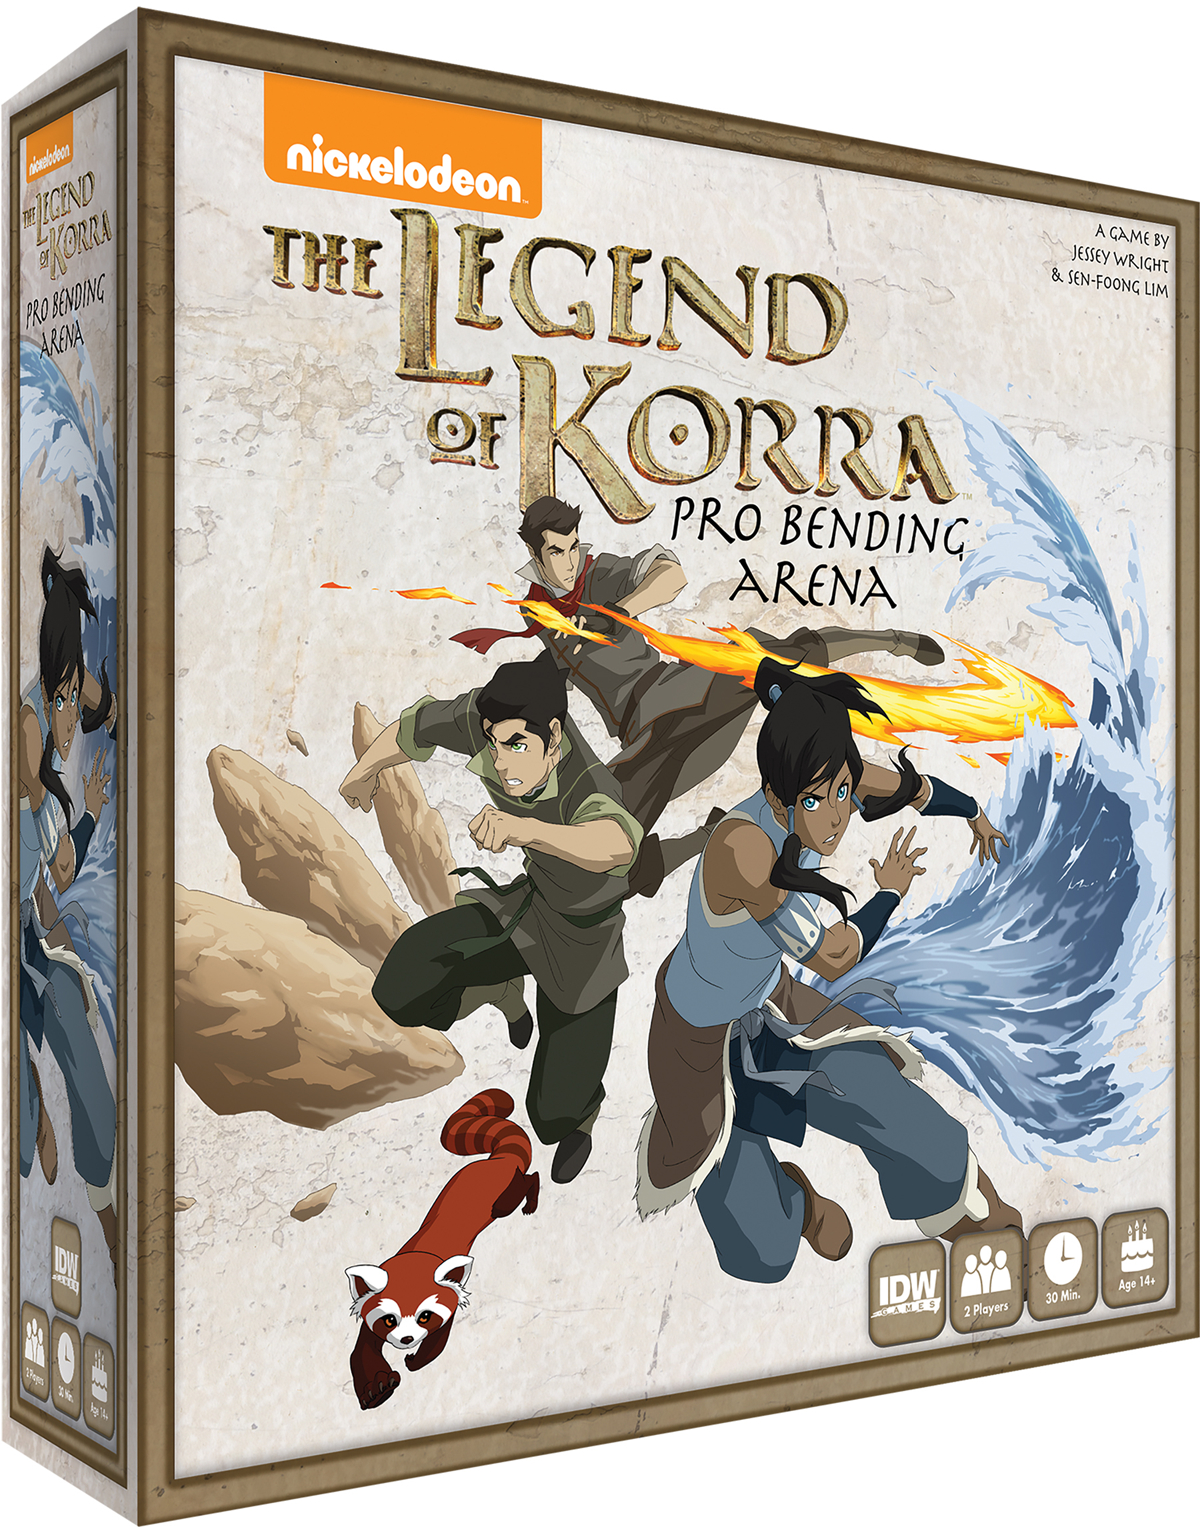 LEGEND OF KORRA PRO BENDING ARENA GAME